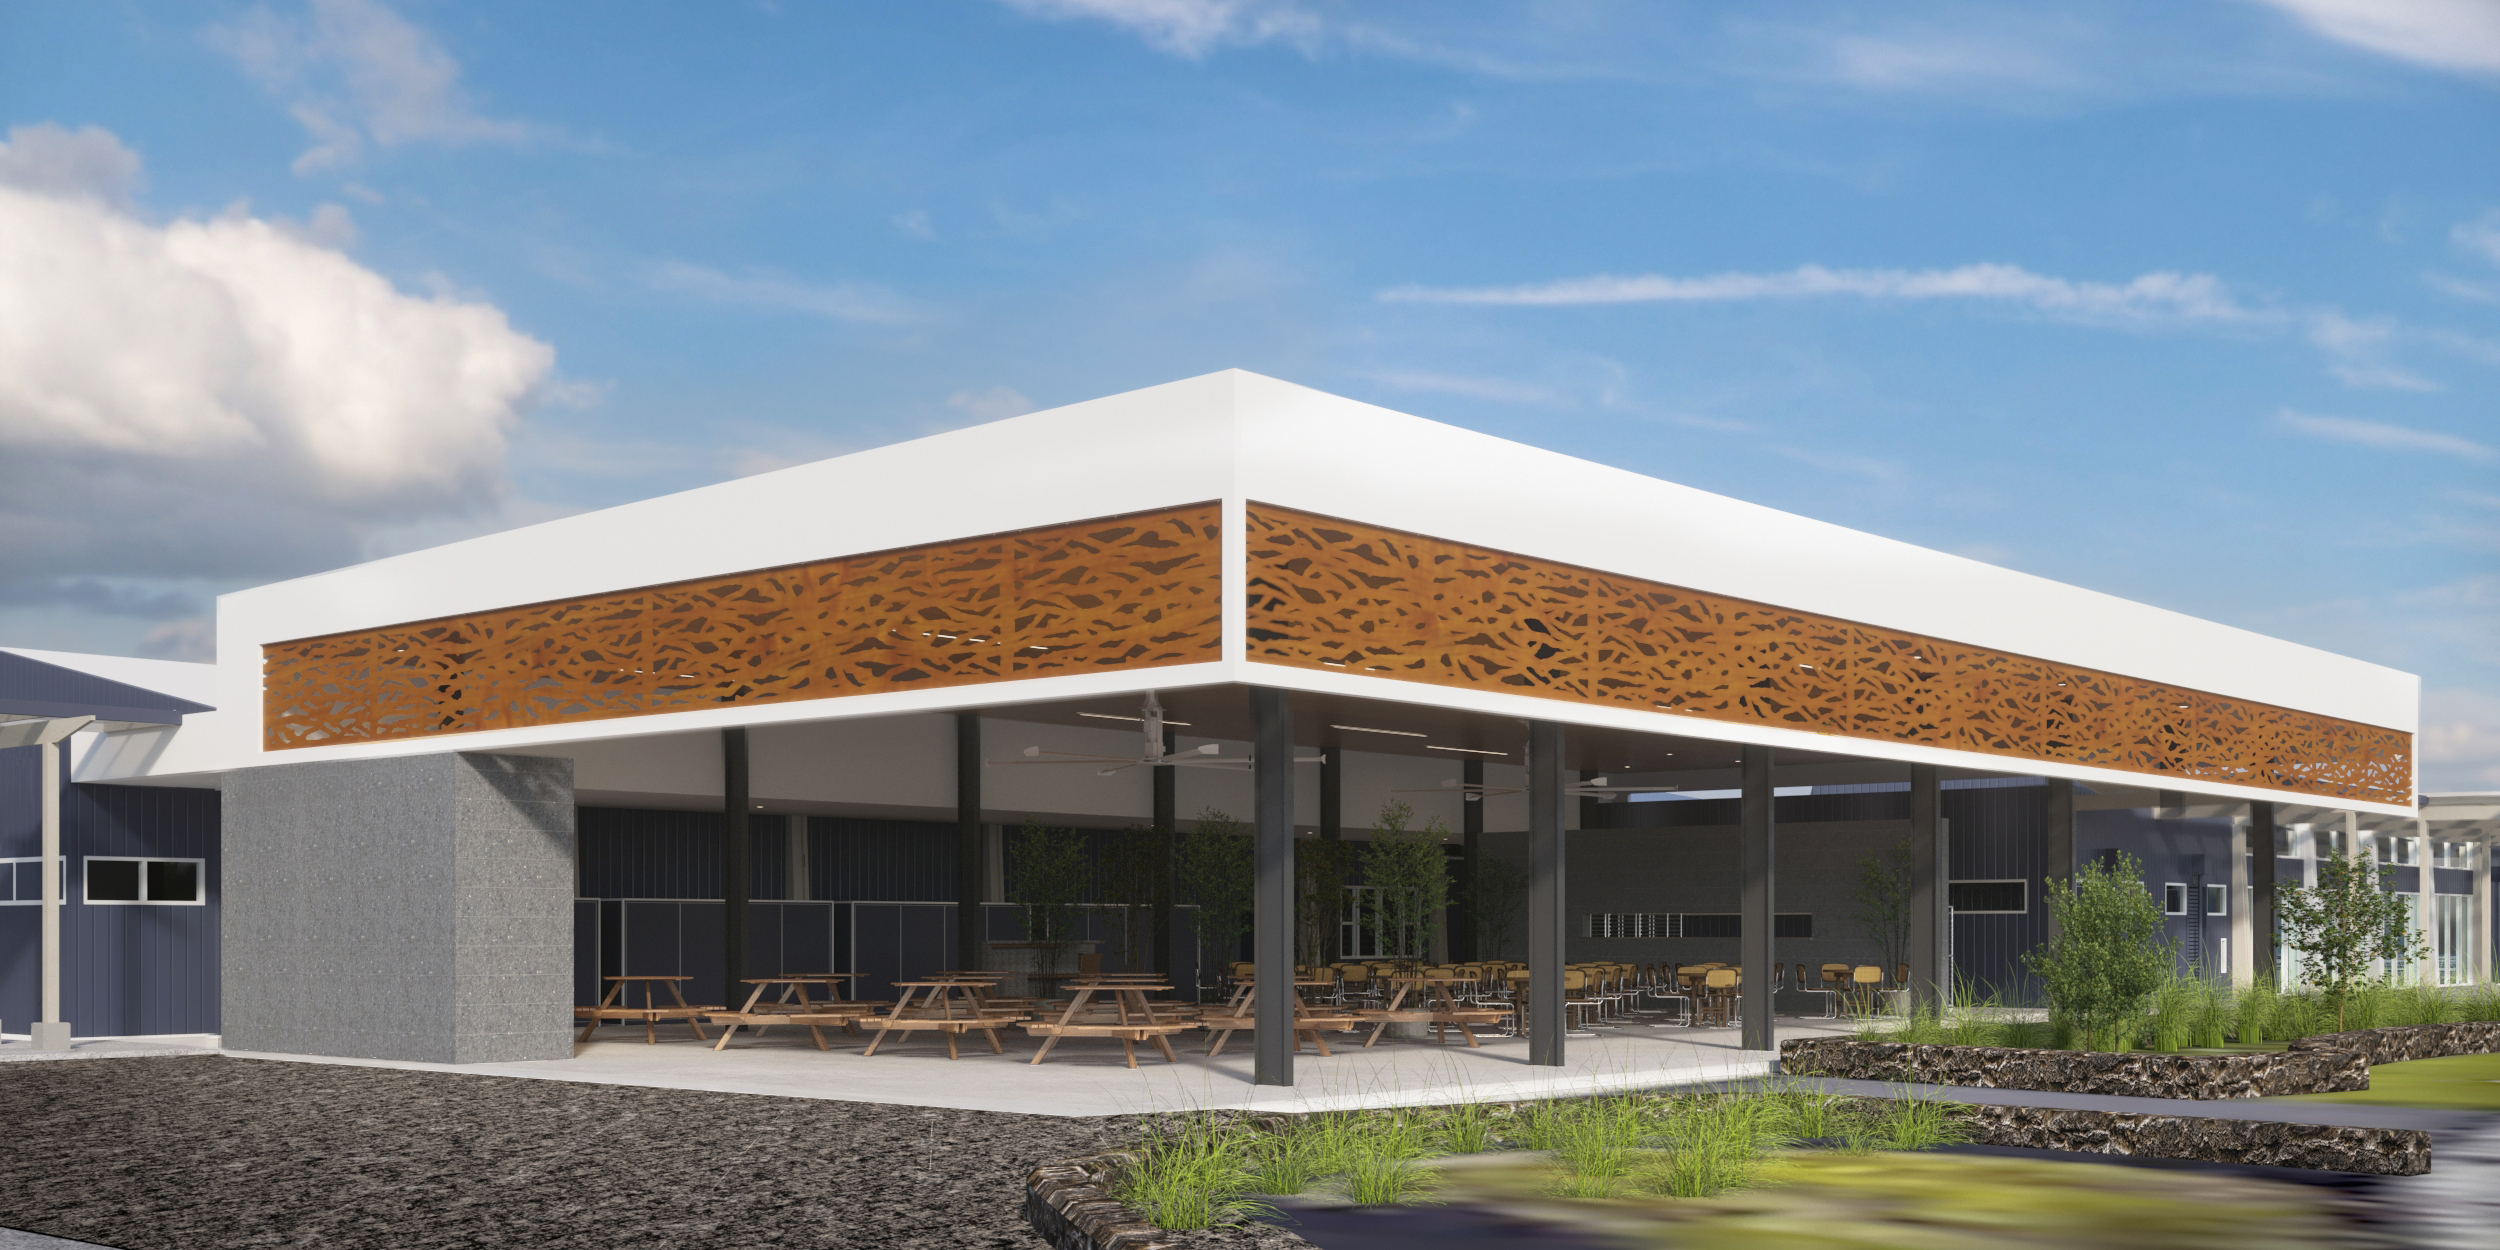 An rendering of what the lanai project at Hawai'i Community College – Pālamanui will look like when complete.